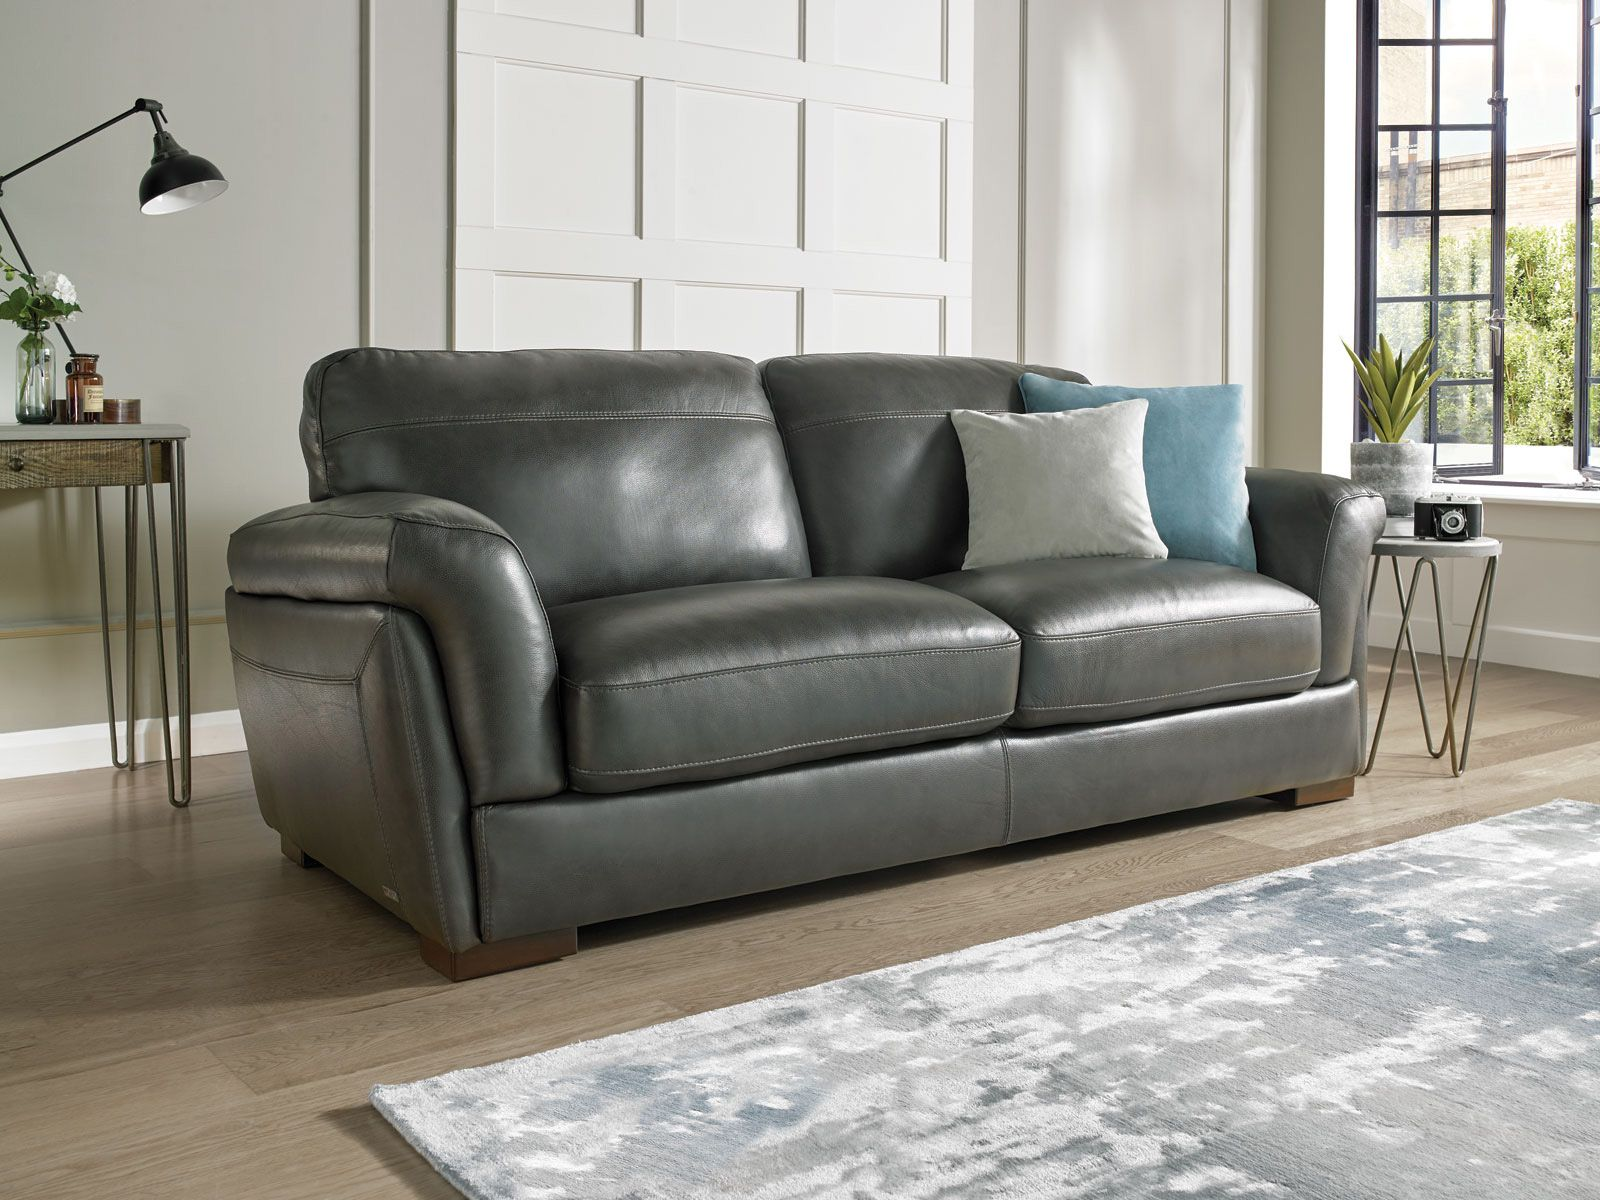 Lovely Sumptuous And Stylish Leather Sofa With Padded Arm Cushions And Contrast  Stitching Detail.